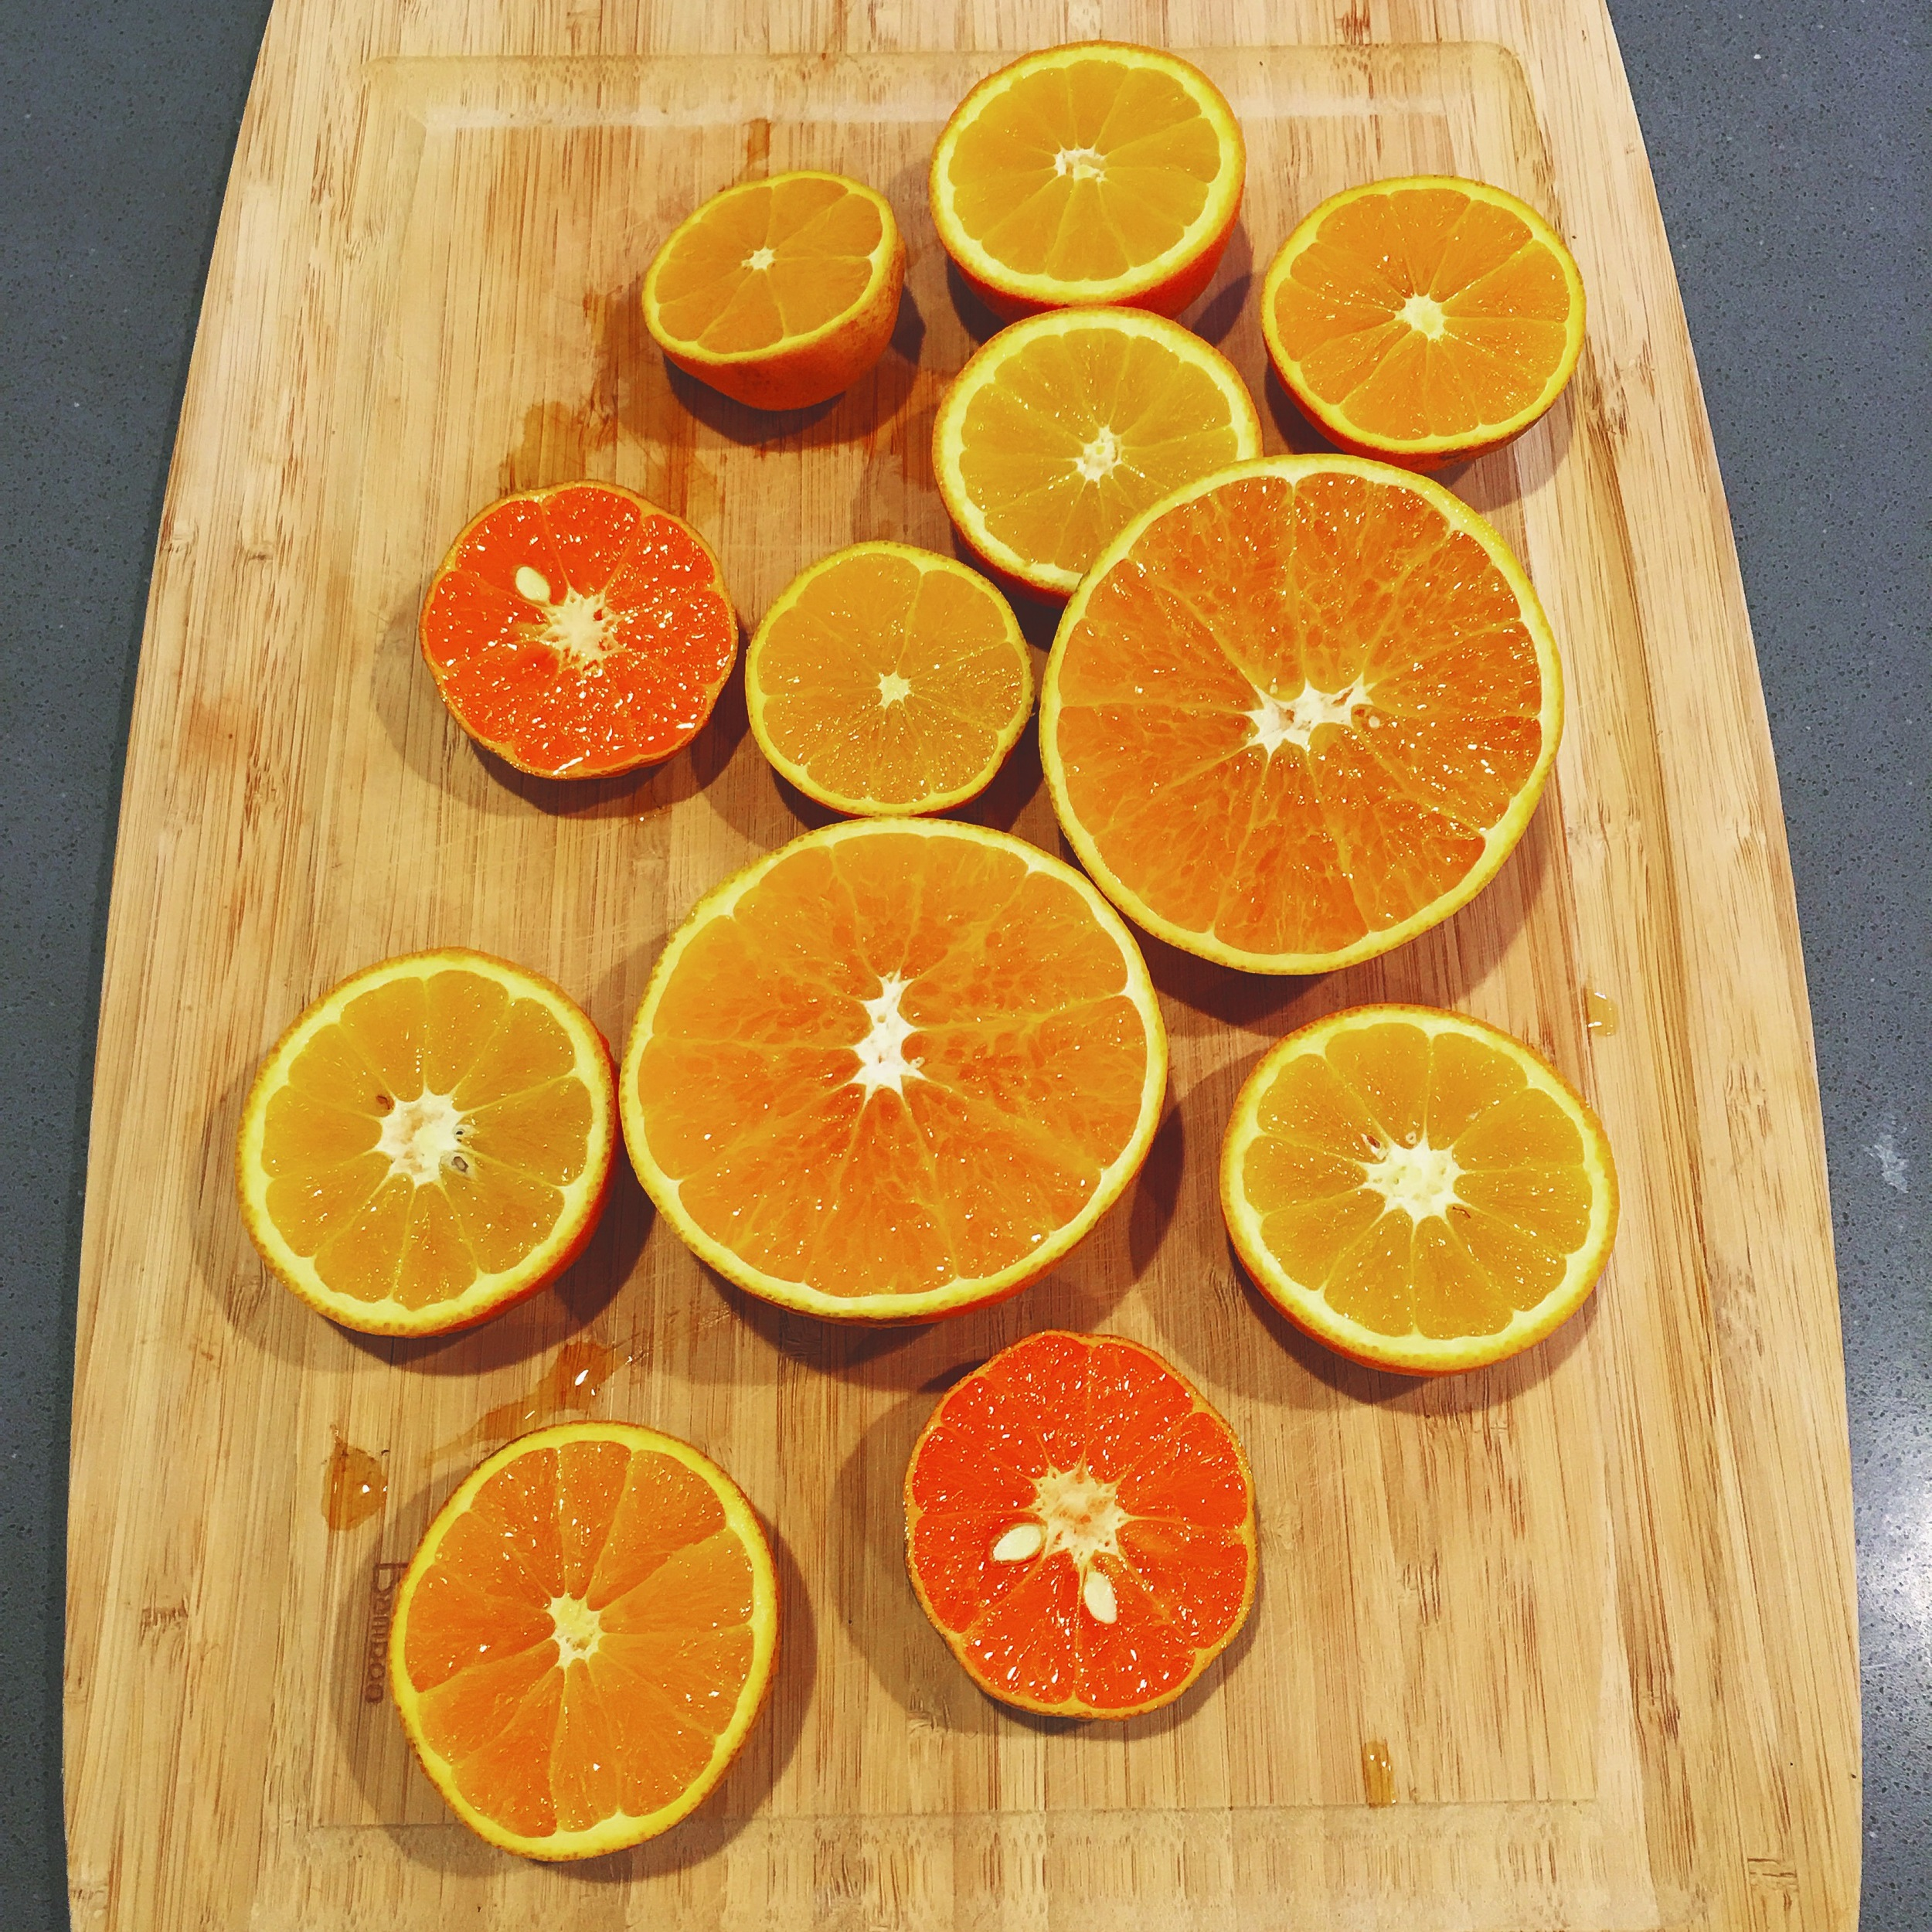 Rich in vitamin C: Fresh mandarins and oranges from our garden